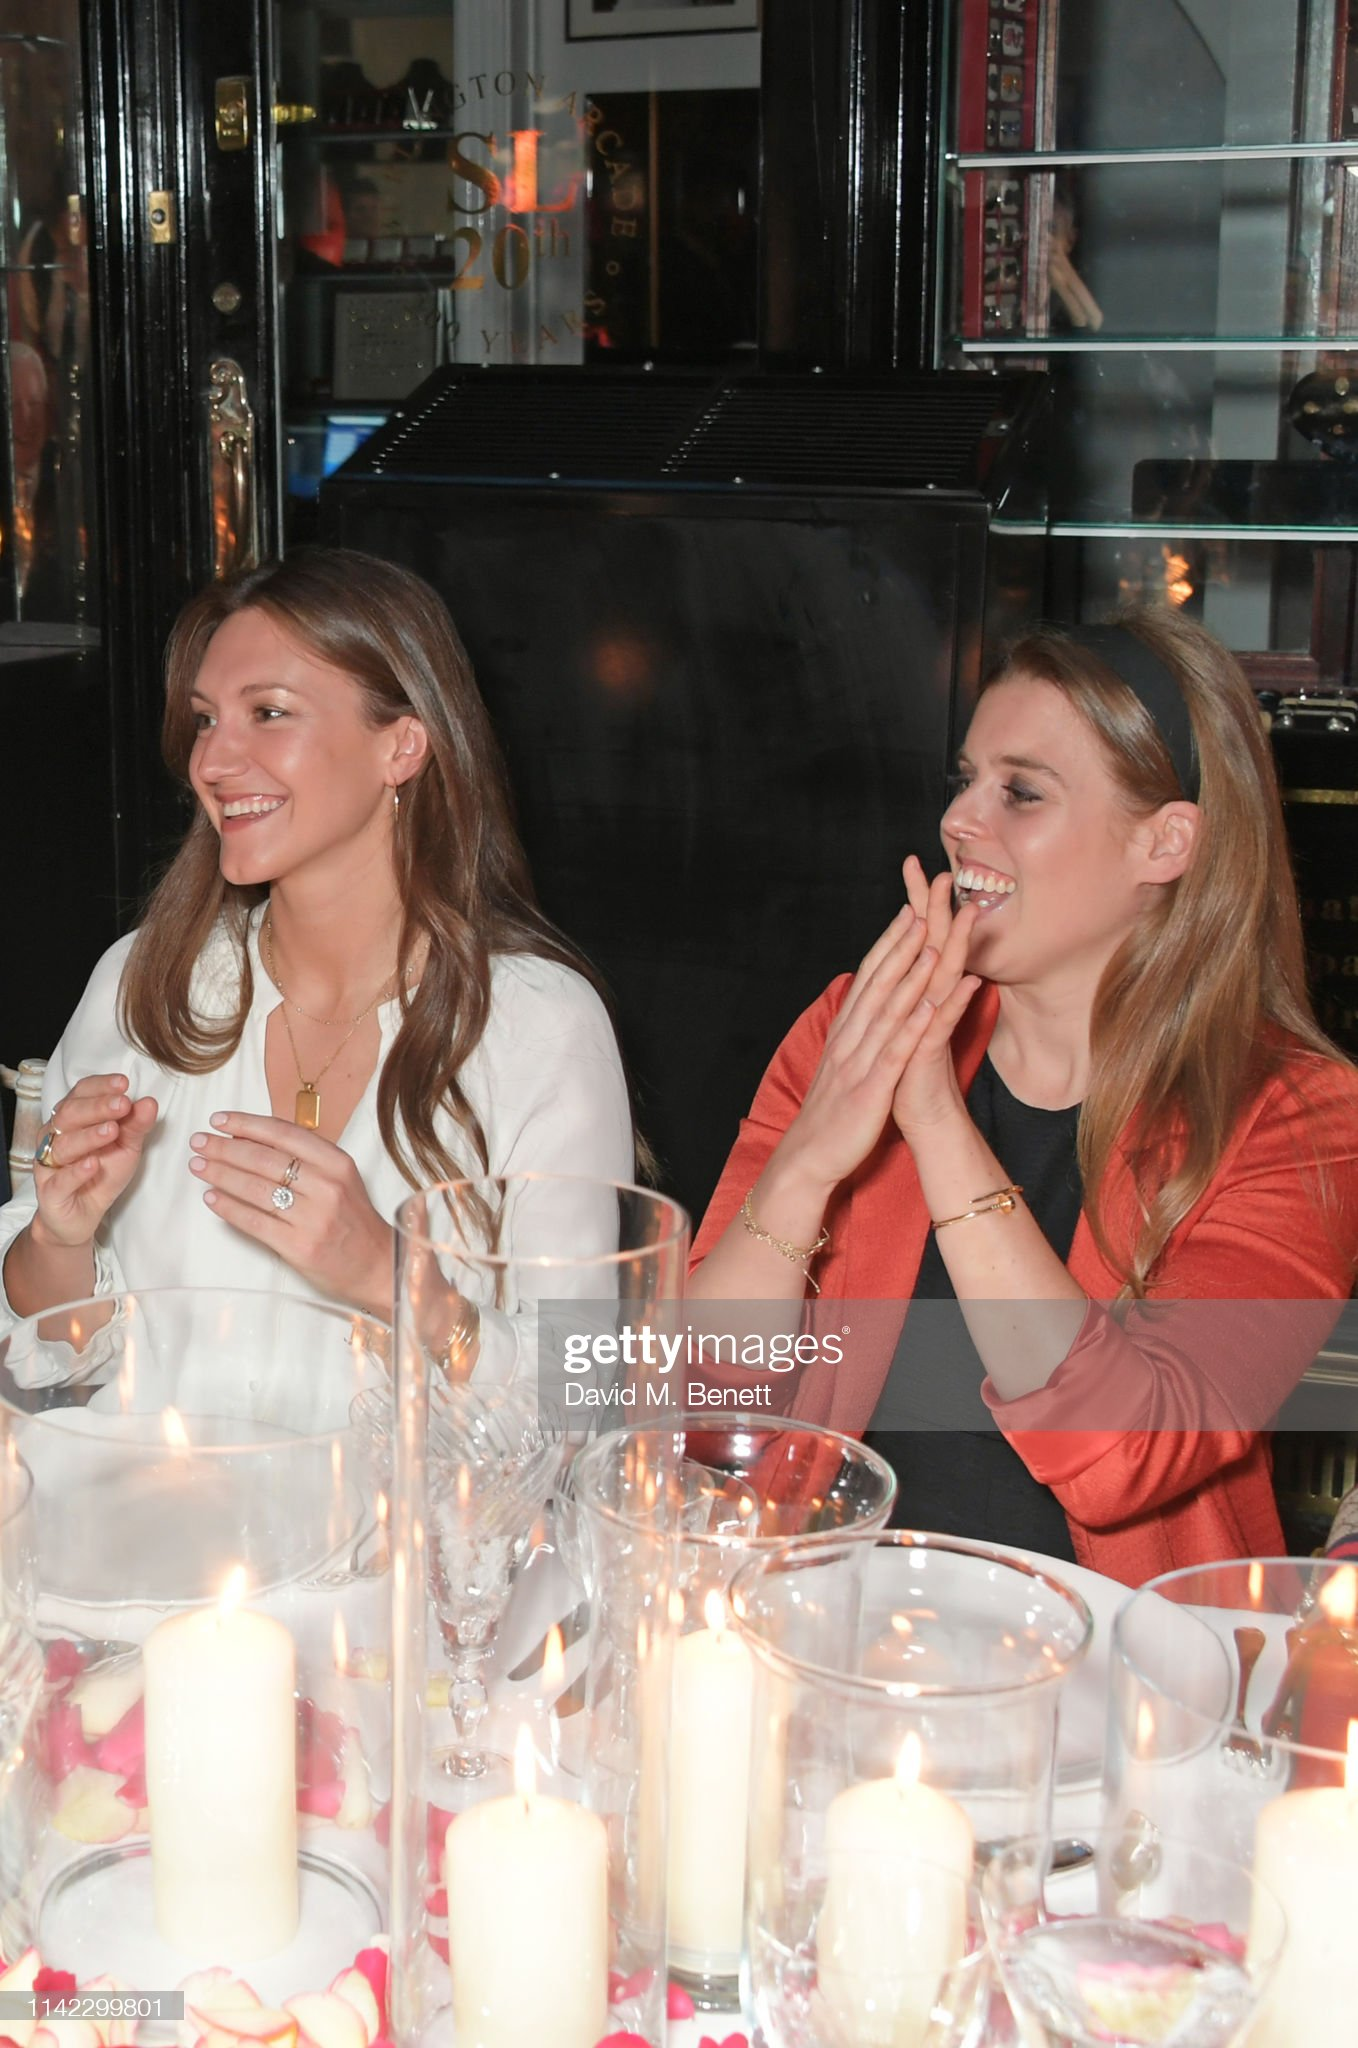 https://media.gettyimages.com/photos/maryclare-winwood-and-princess-beatrice-of-york-attend-the-burlington-picture-id1142299801?s=2048x2048